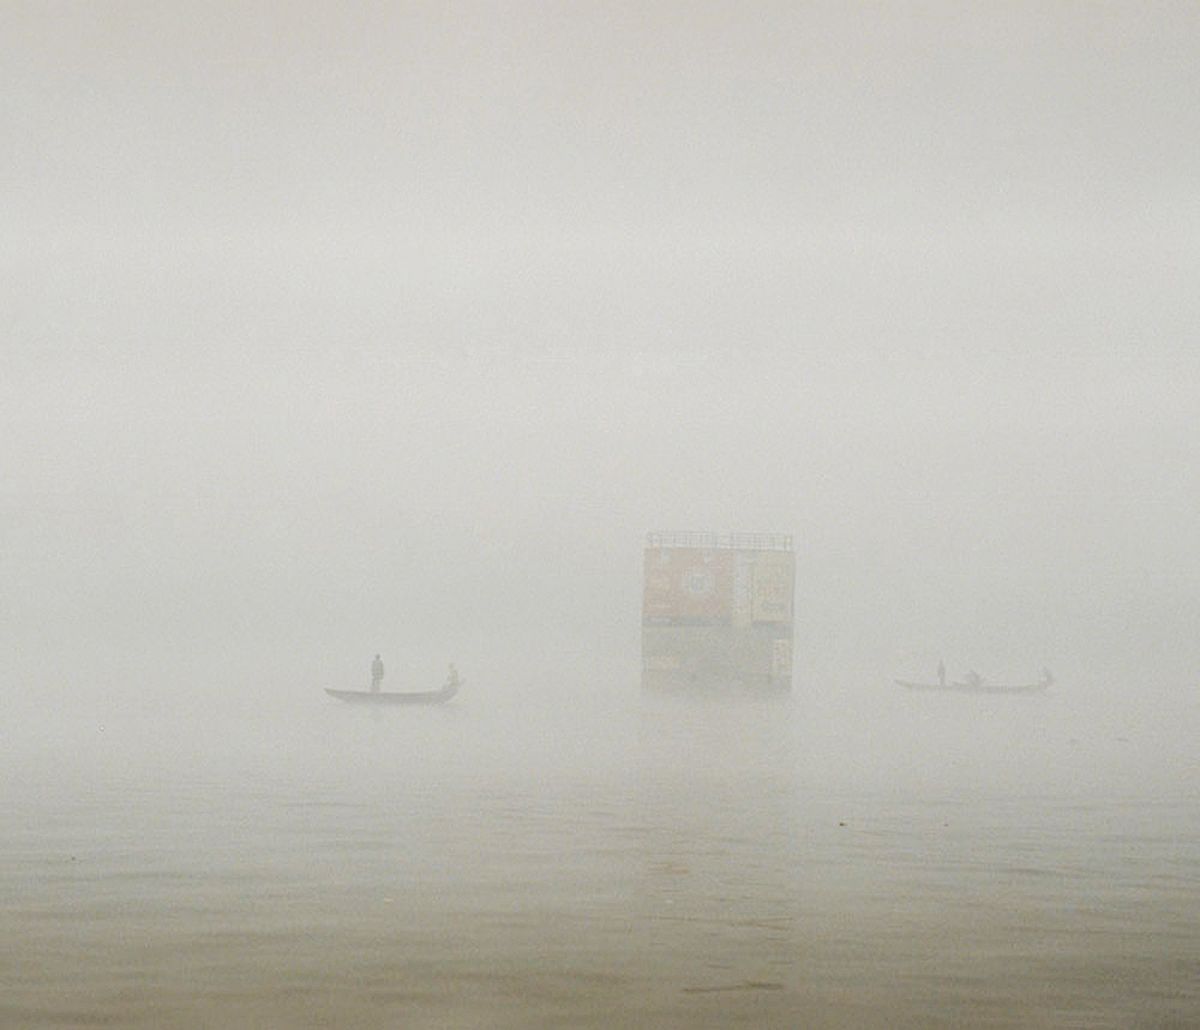 Peoples are crossing river though it is very risky because of heavy fog in winter.